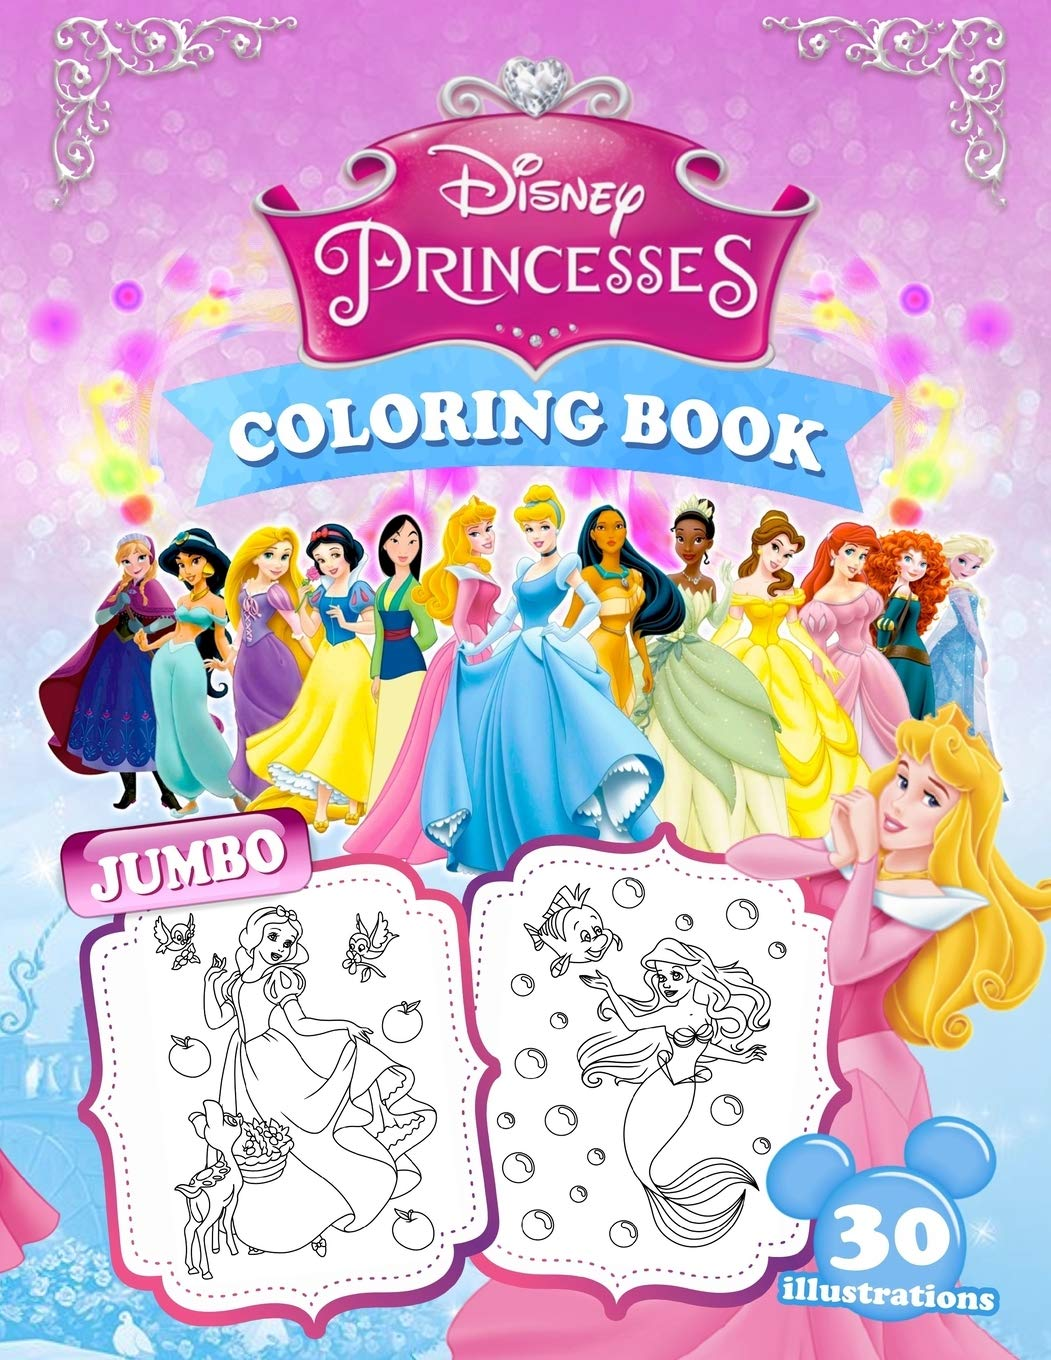 Princesses Coloring Book: Jumbo Princess Coloring Book For Kids